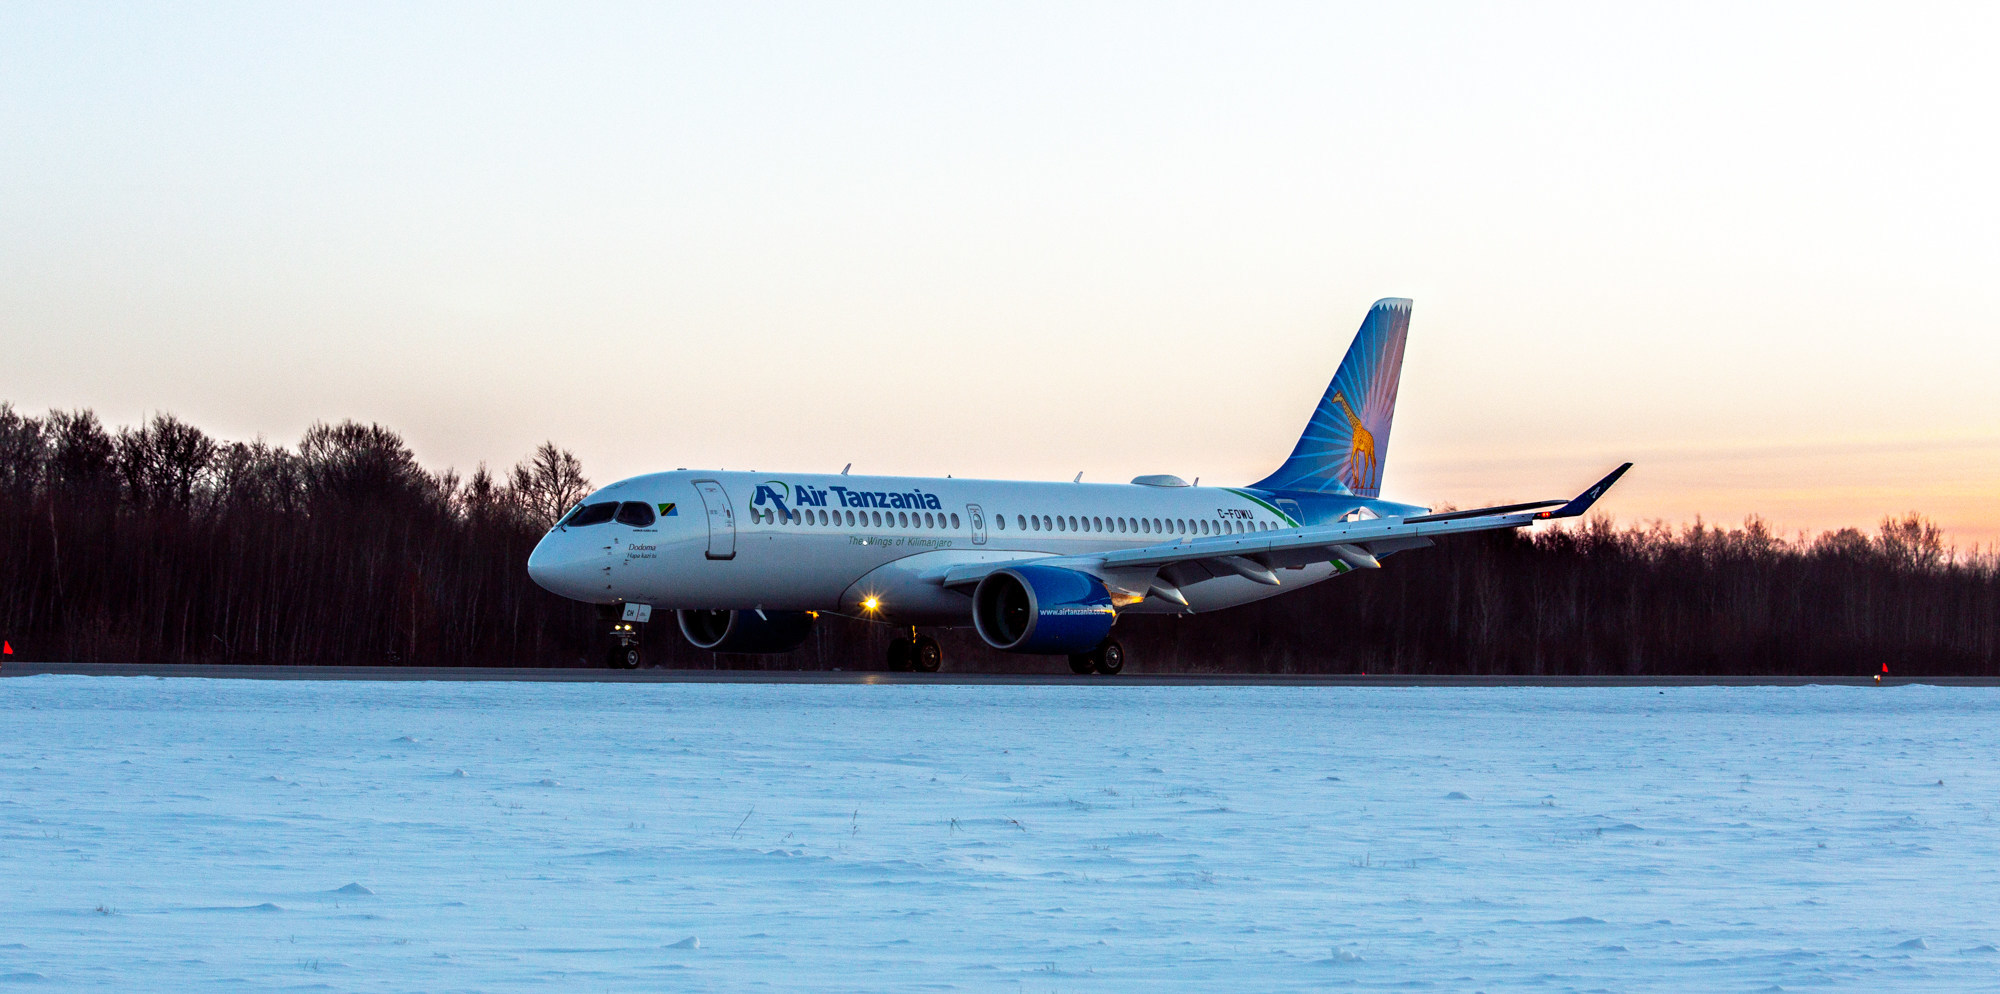 Pratt & Whitney and Air Tanzania celebrated delivery of the airline's first A220 aircraft powered by Pratt & Whitney GTF™ engines.